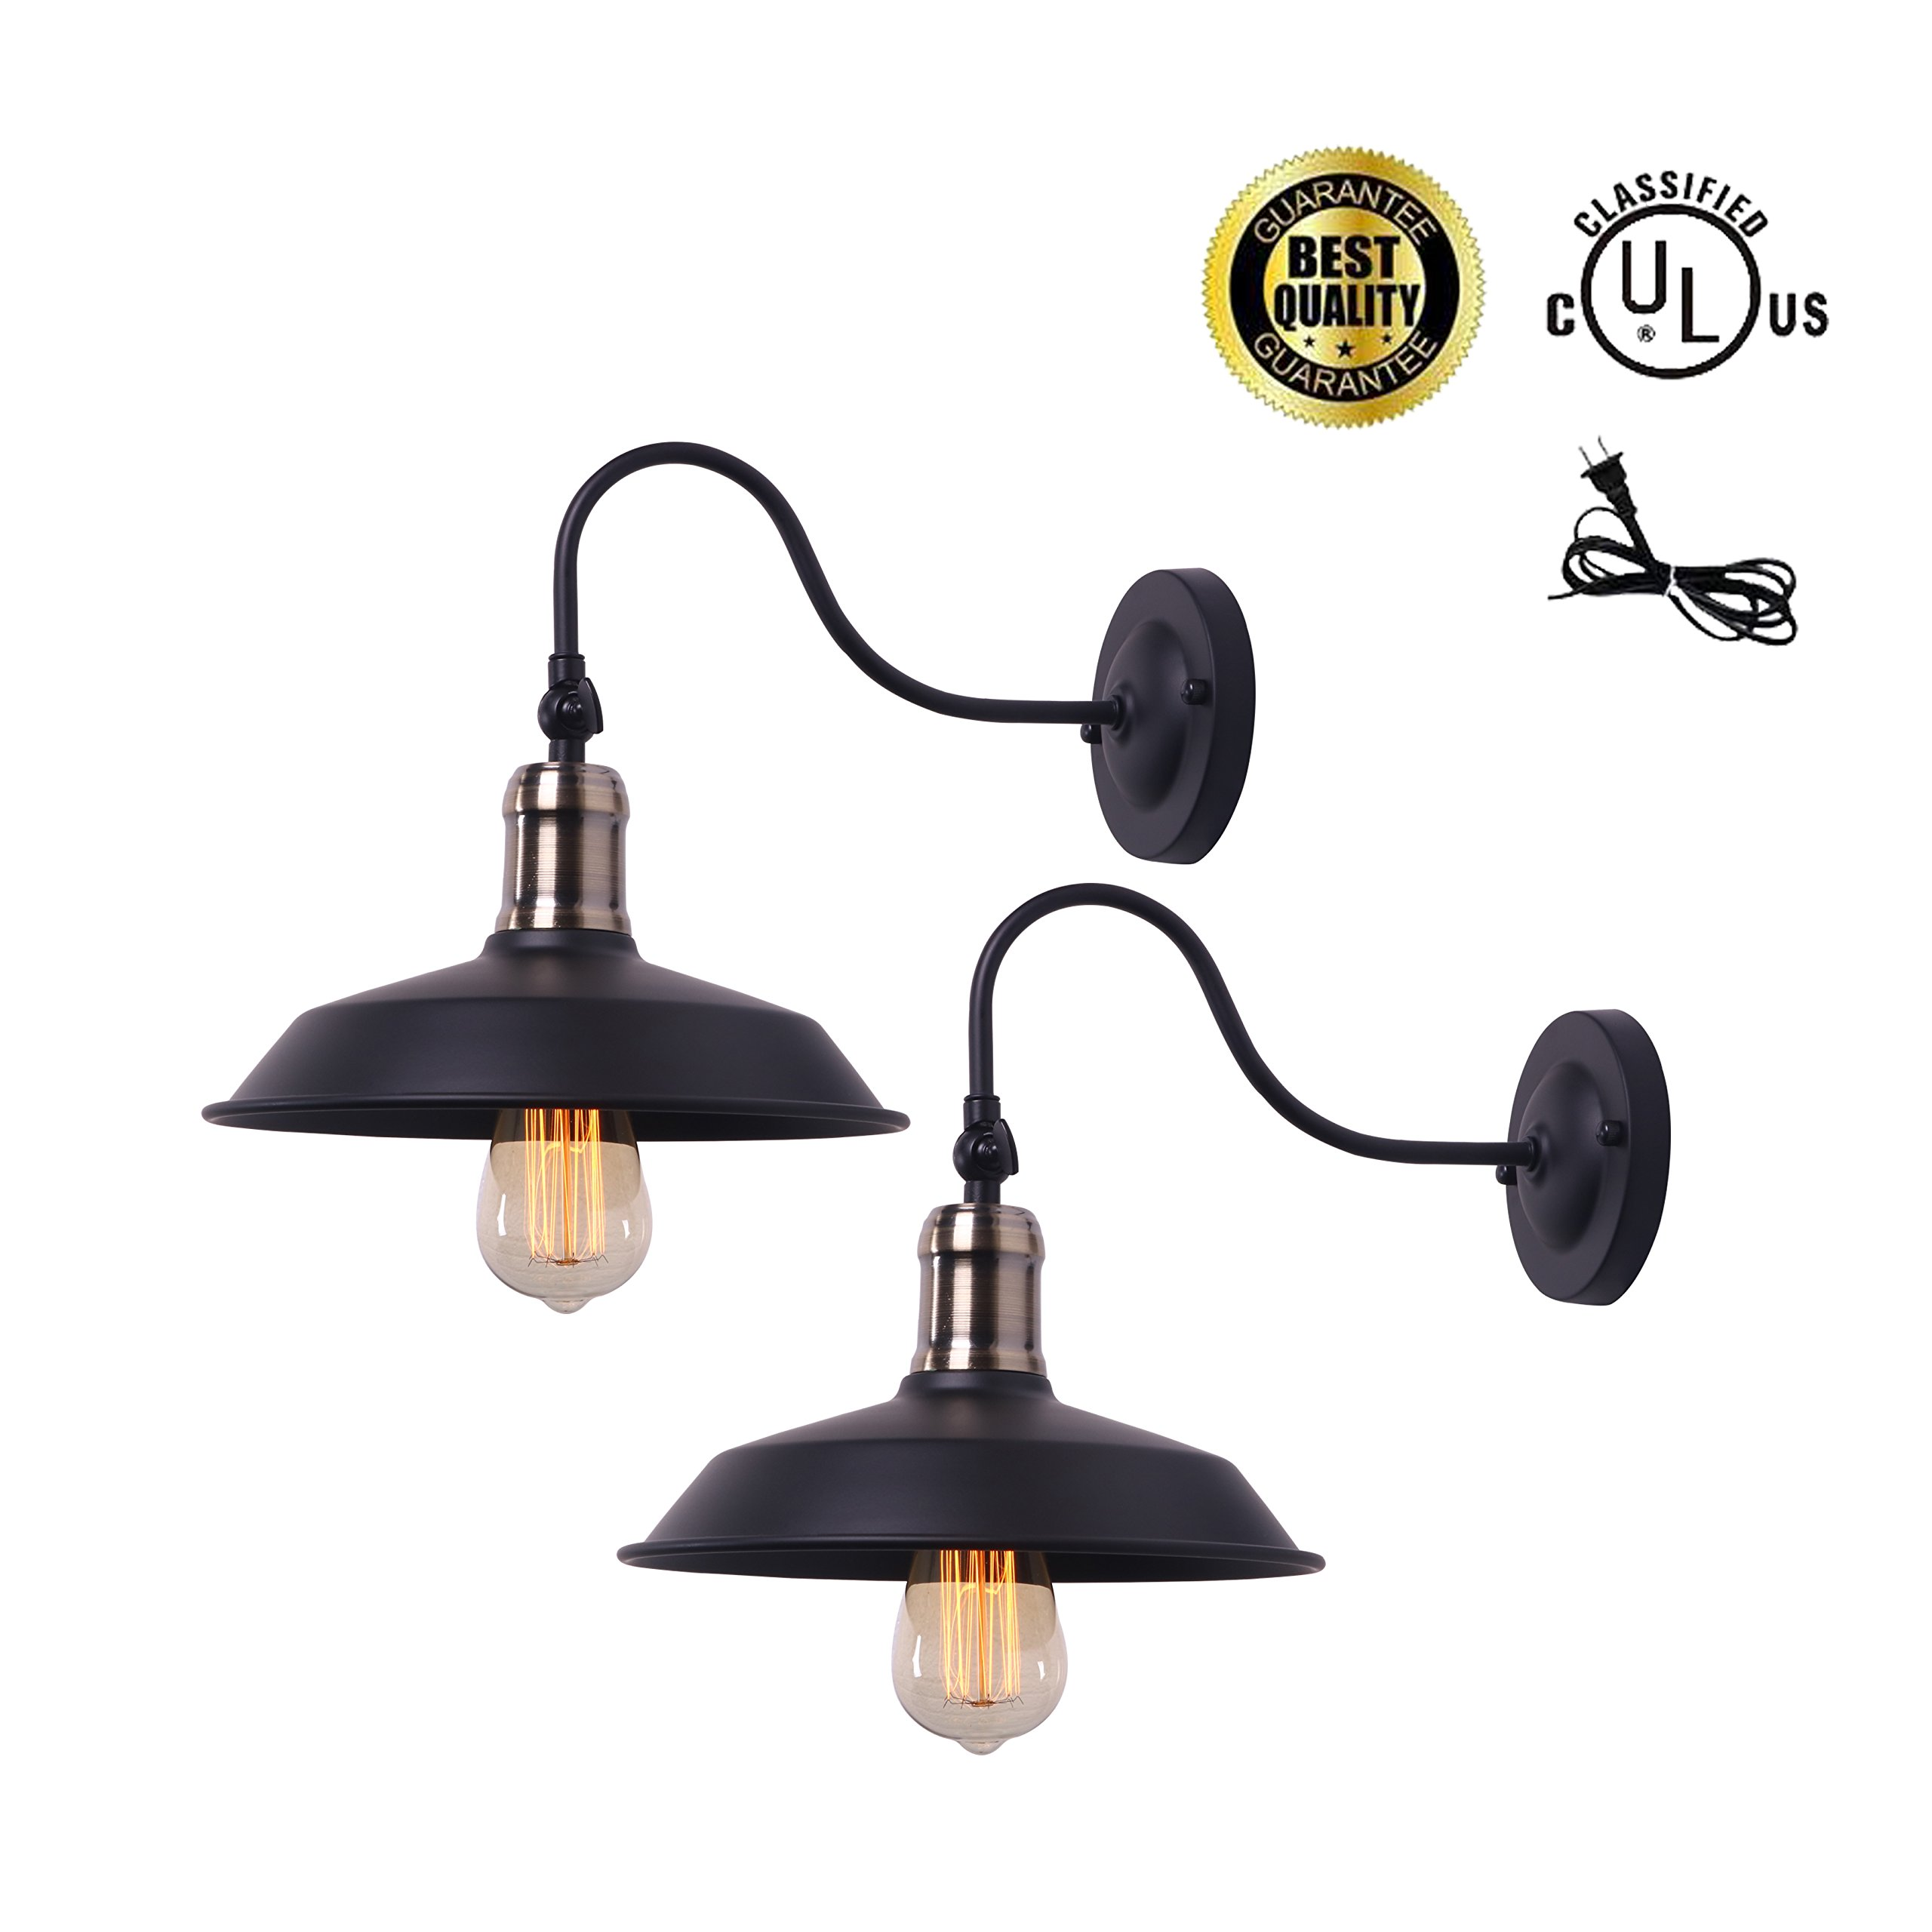 ALLTRUST Antique Brass and Black Industrial Rustic Wall Lamp Antique Farmhouse Wall Sconce Lighting Gooseneck Wall Light Fixtures Plug in Cord E26 Base for Indoor Use (Set of 2 Pack)